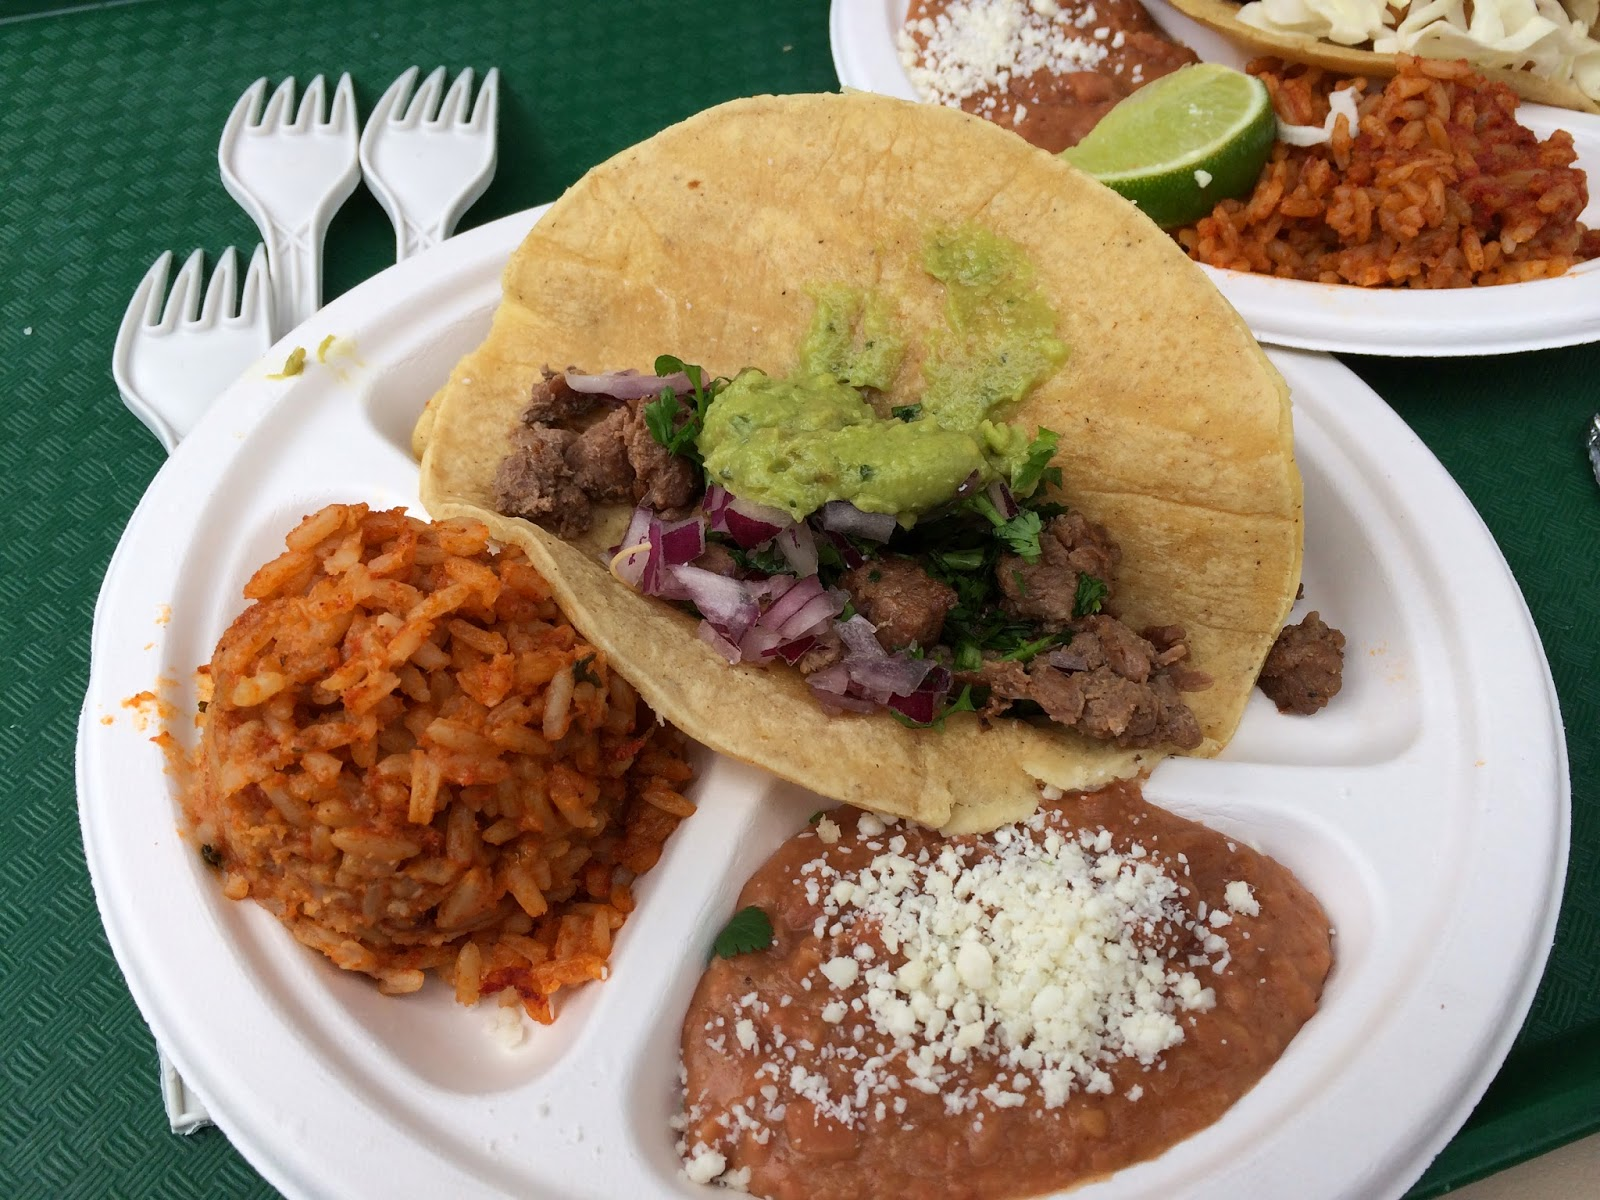 TASTE OF HAWAII: FRONT STREET CAFE AND CANTINA - SAN DIEGO ZOO